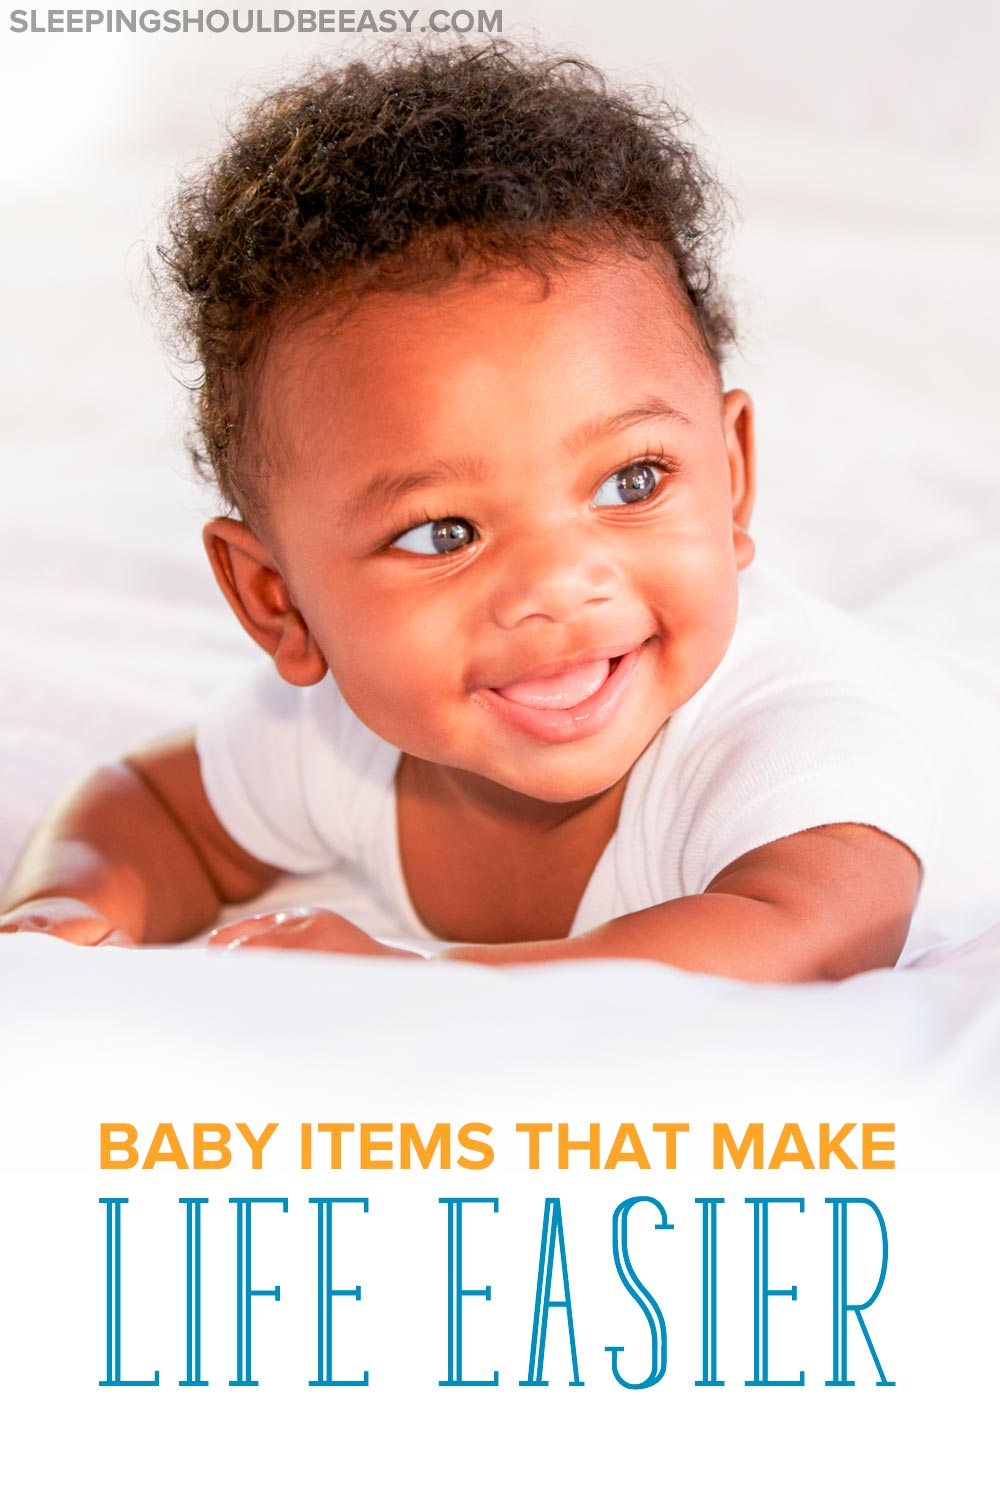 Looking to make life easier with a baby? Check out these newborn baby must haves that will make your life easier, save time and add convenience to your baby days.